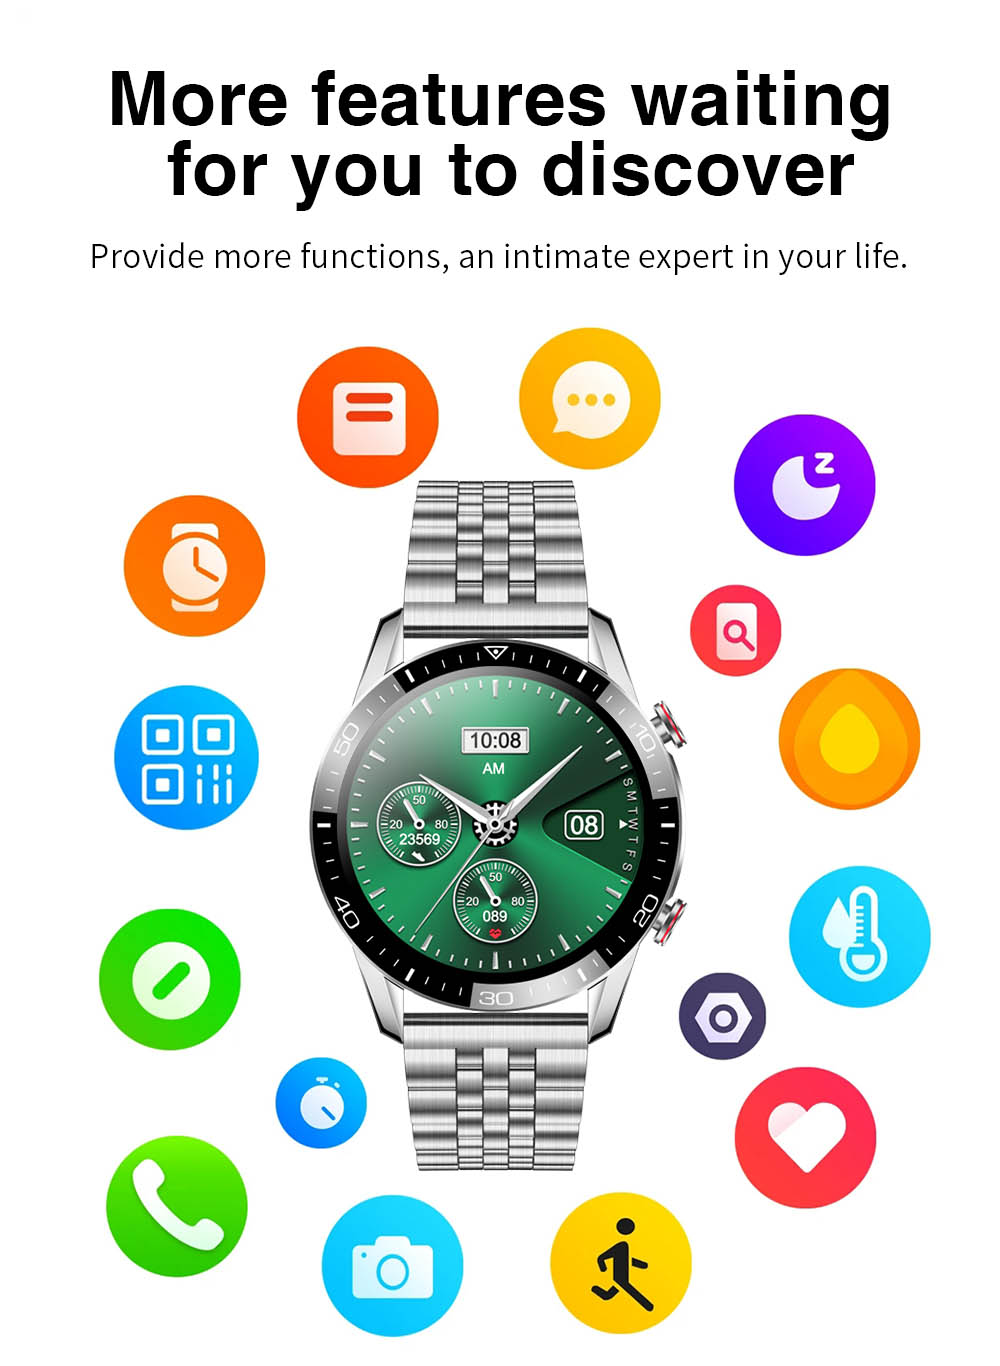 H80eb85608f8e4a5daa4eb240da1804d1L TK2-8 Smart Watch For Men Bluetooth Call IP68 Waterproof Blood Pressure Heart Rate Monitor New SmartWatch Sports Fitness Tracker